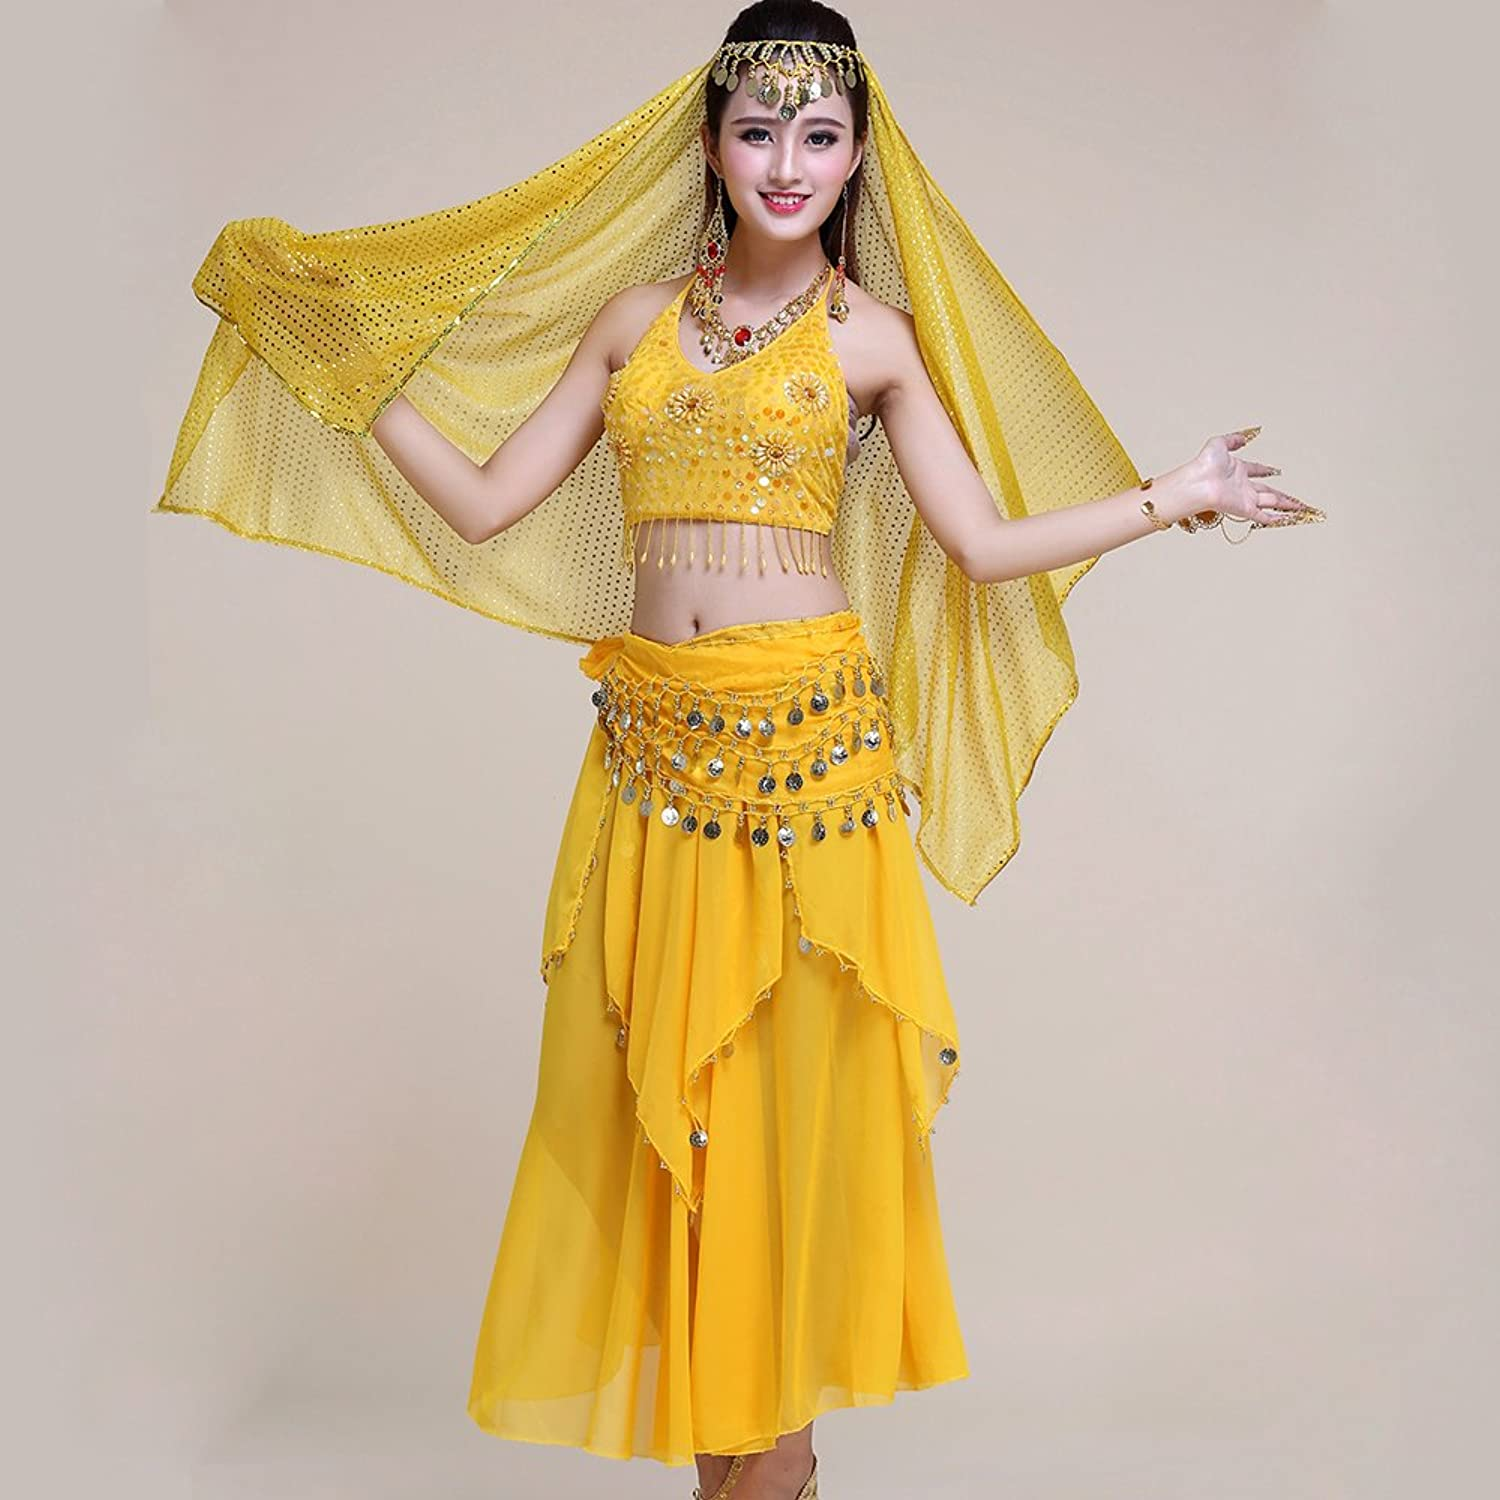 Professional Lady Belly Dance Costumes Sets Indian Dance Dress Performance Dress National Dance Yellow 5Piece Set